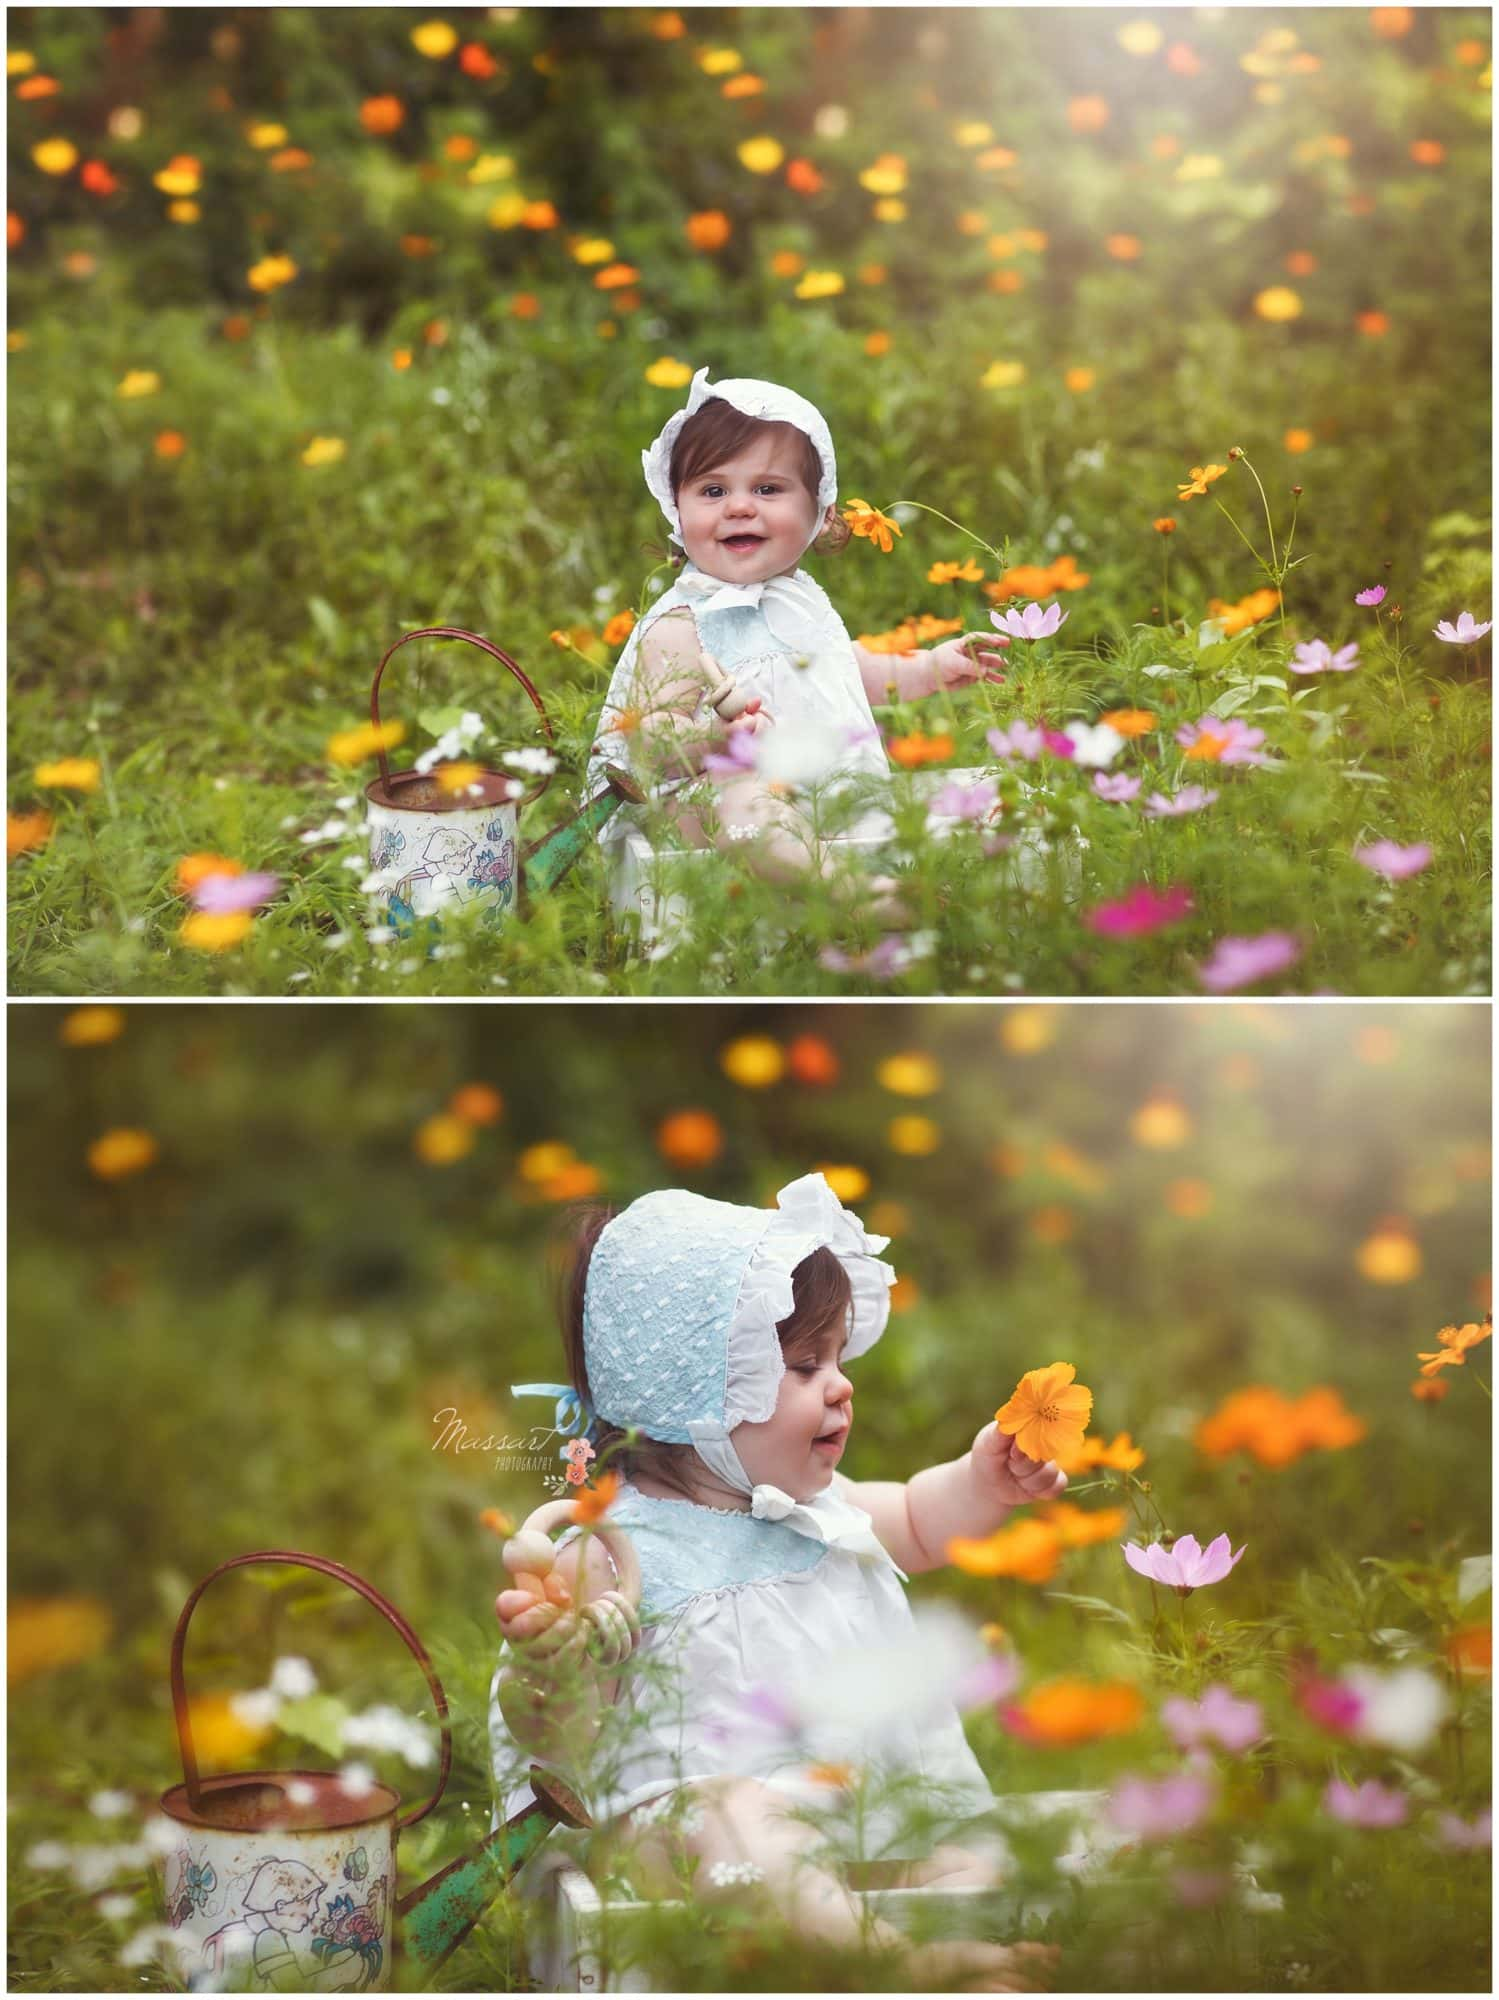 Baby girl sits in floral garden during her milestone portrait session photographed by Massart Photography Rhode Island